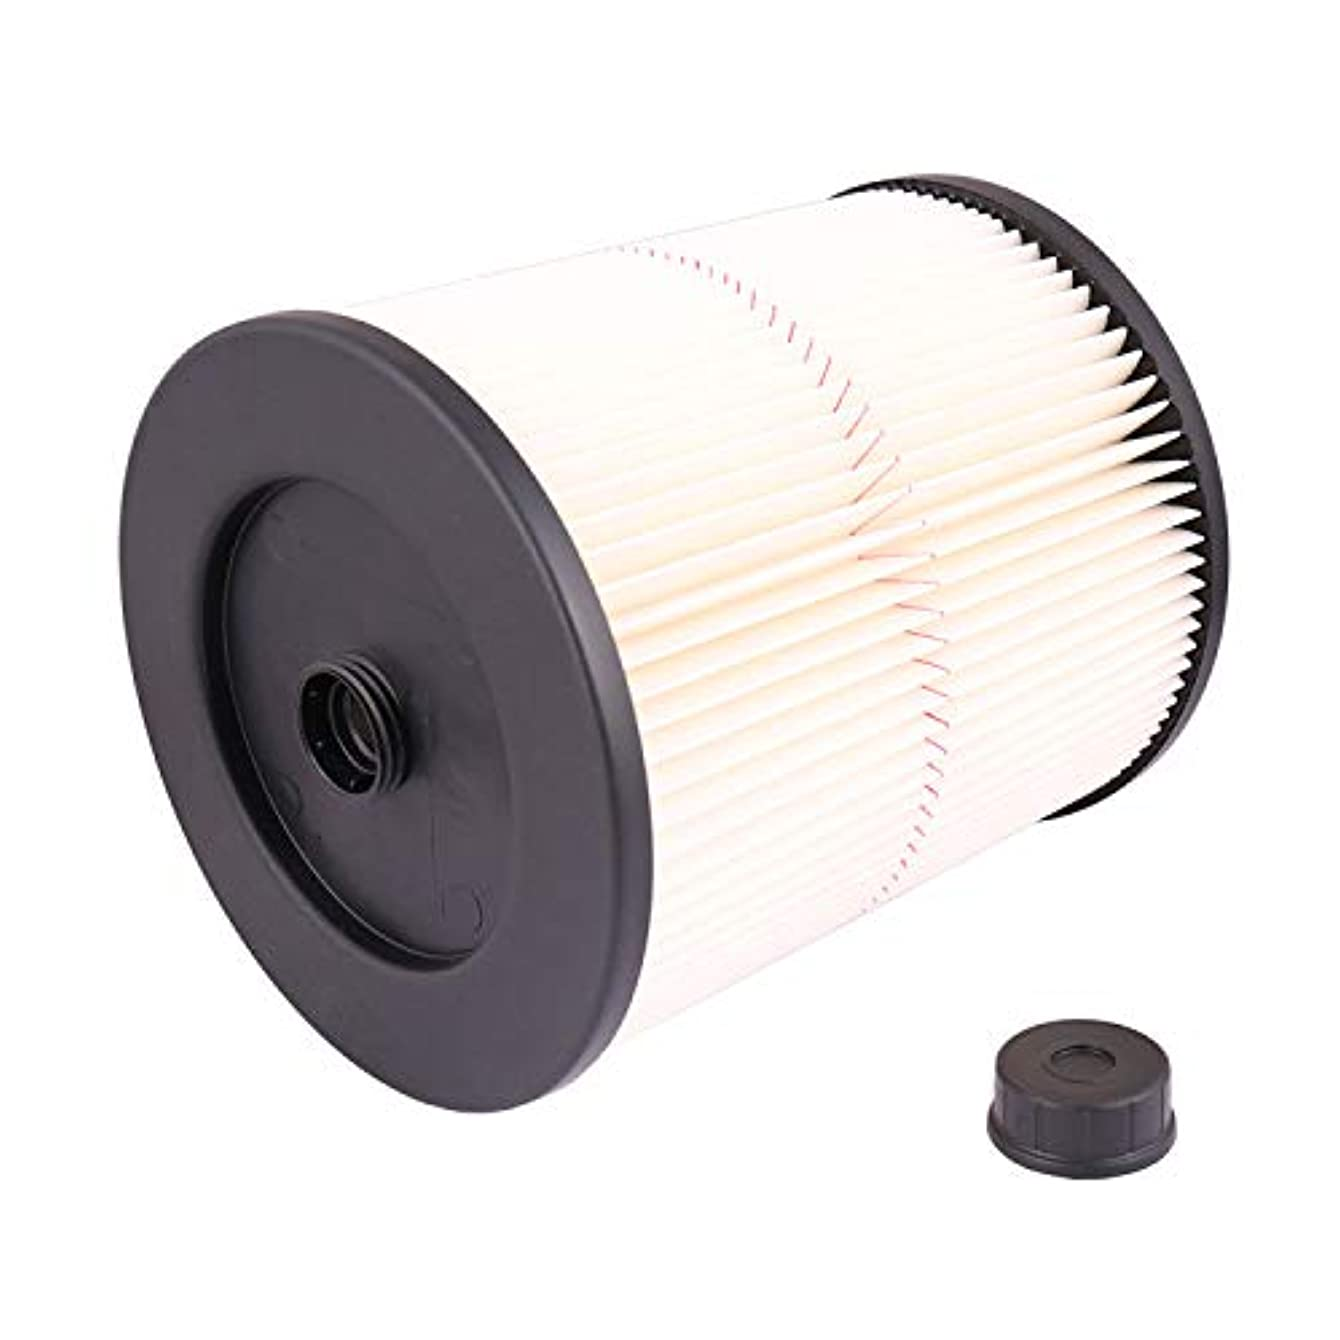 Dutong Replacement Filter Fit Shop Vac Craftsman 17816 9-17816 Wet Dry Vacuum Air Cartridge Filter for 5 Gallon Vacuum Cleaner